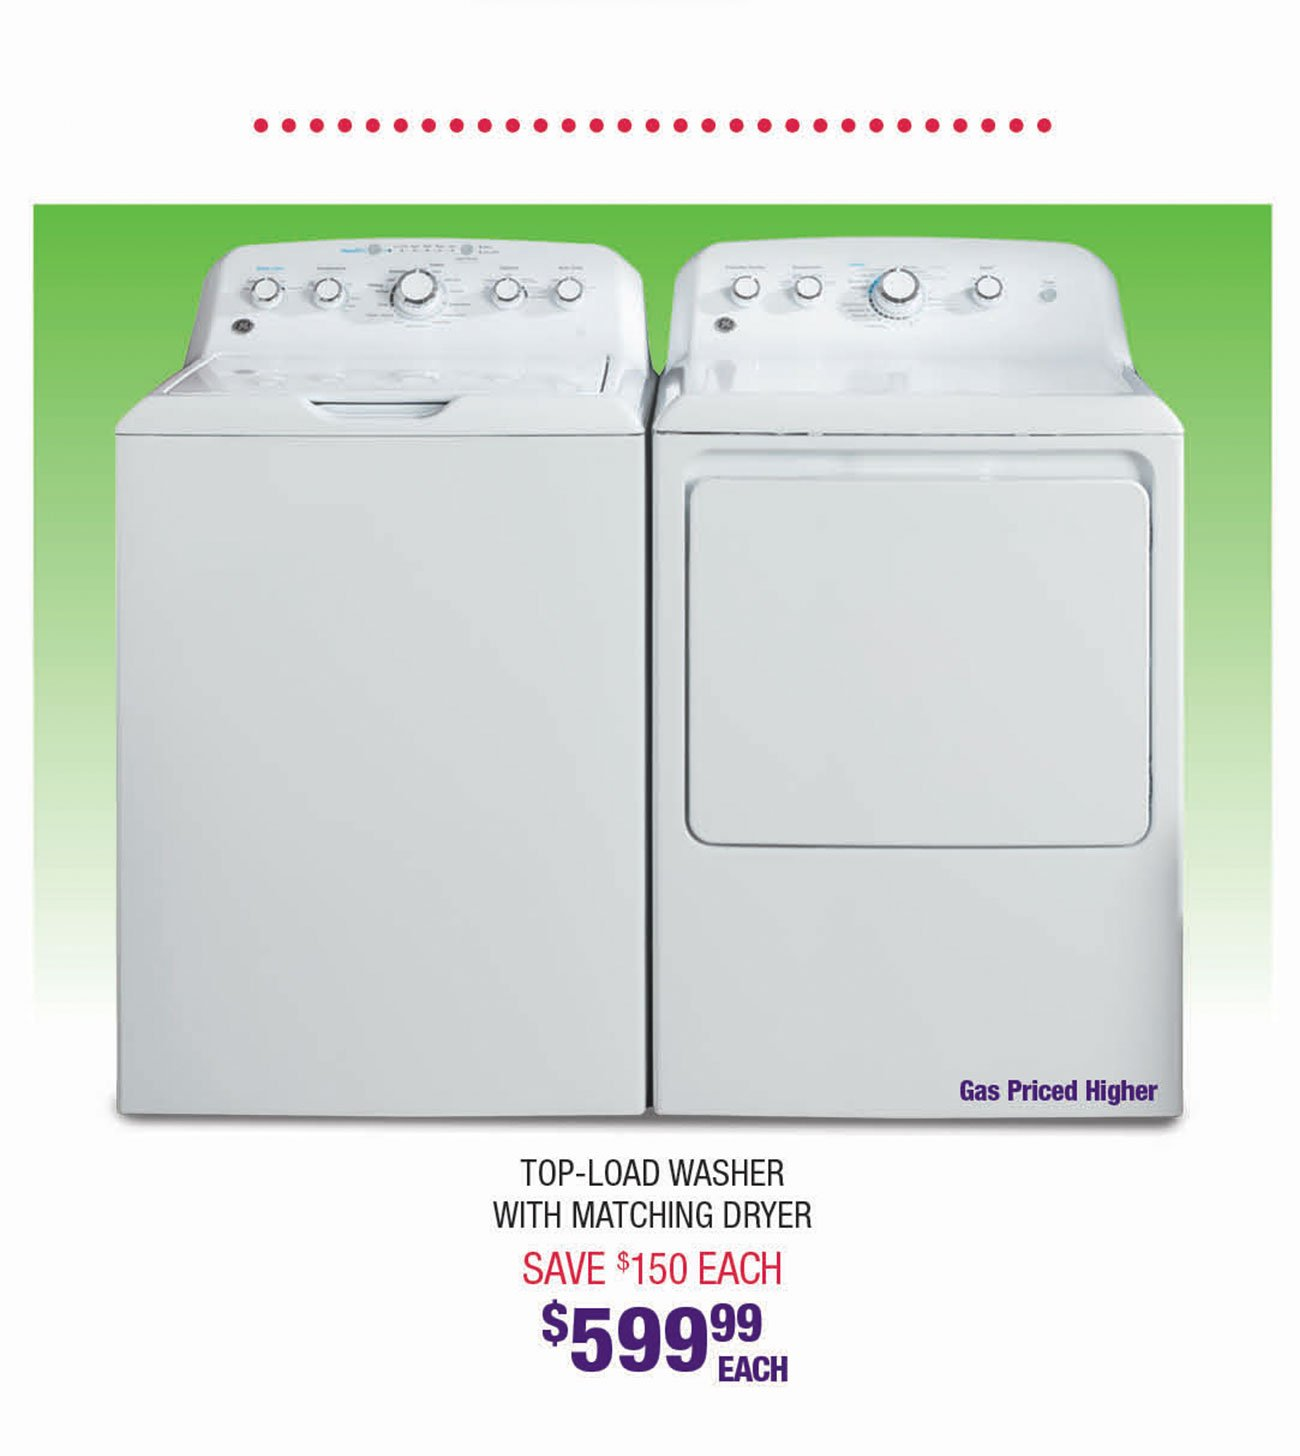 Top-Load-Washer-Matching-Dryer-UIRV